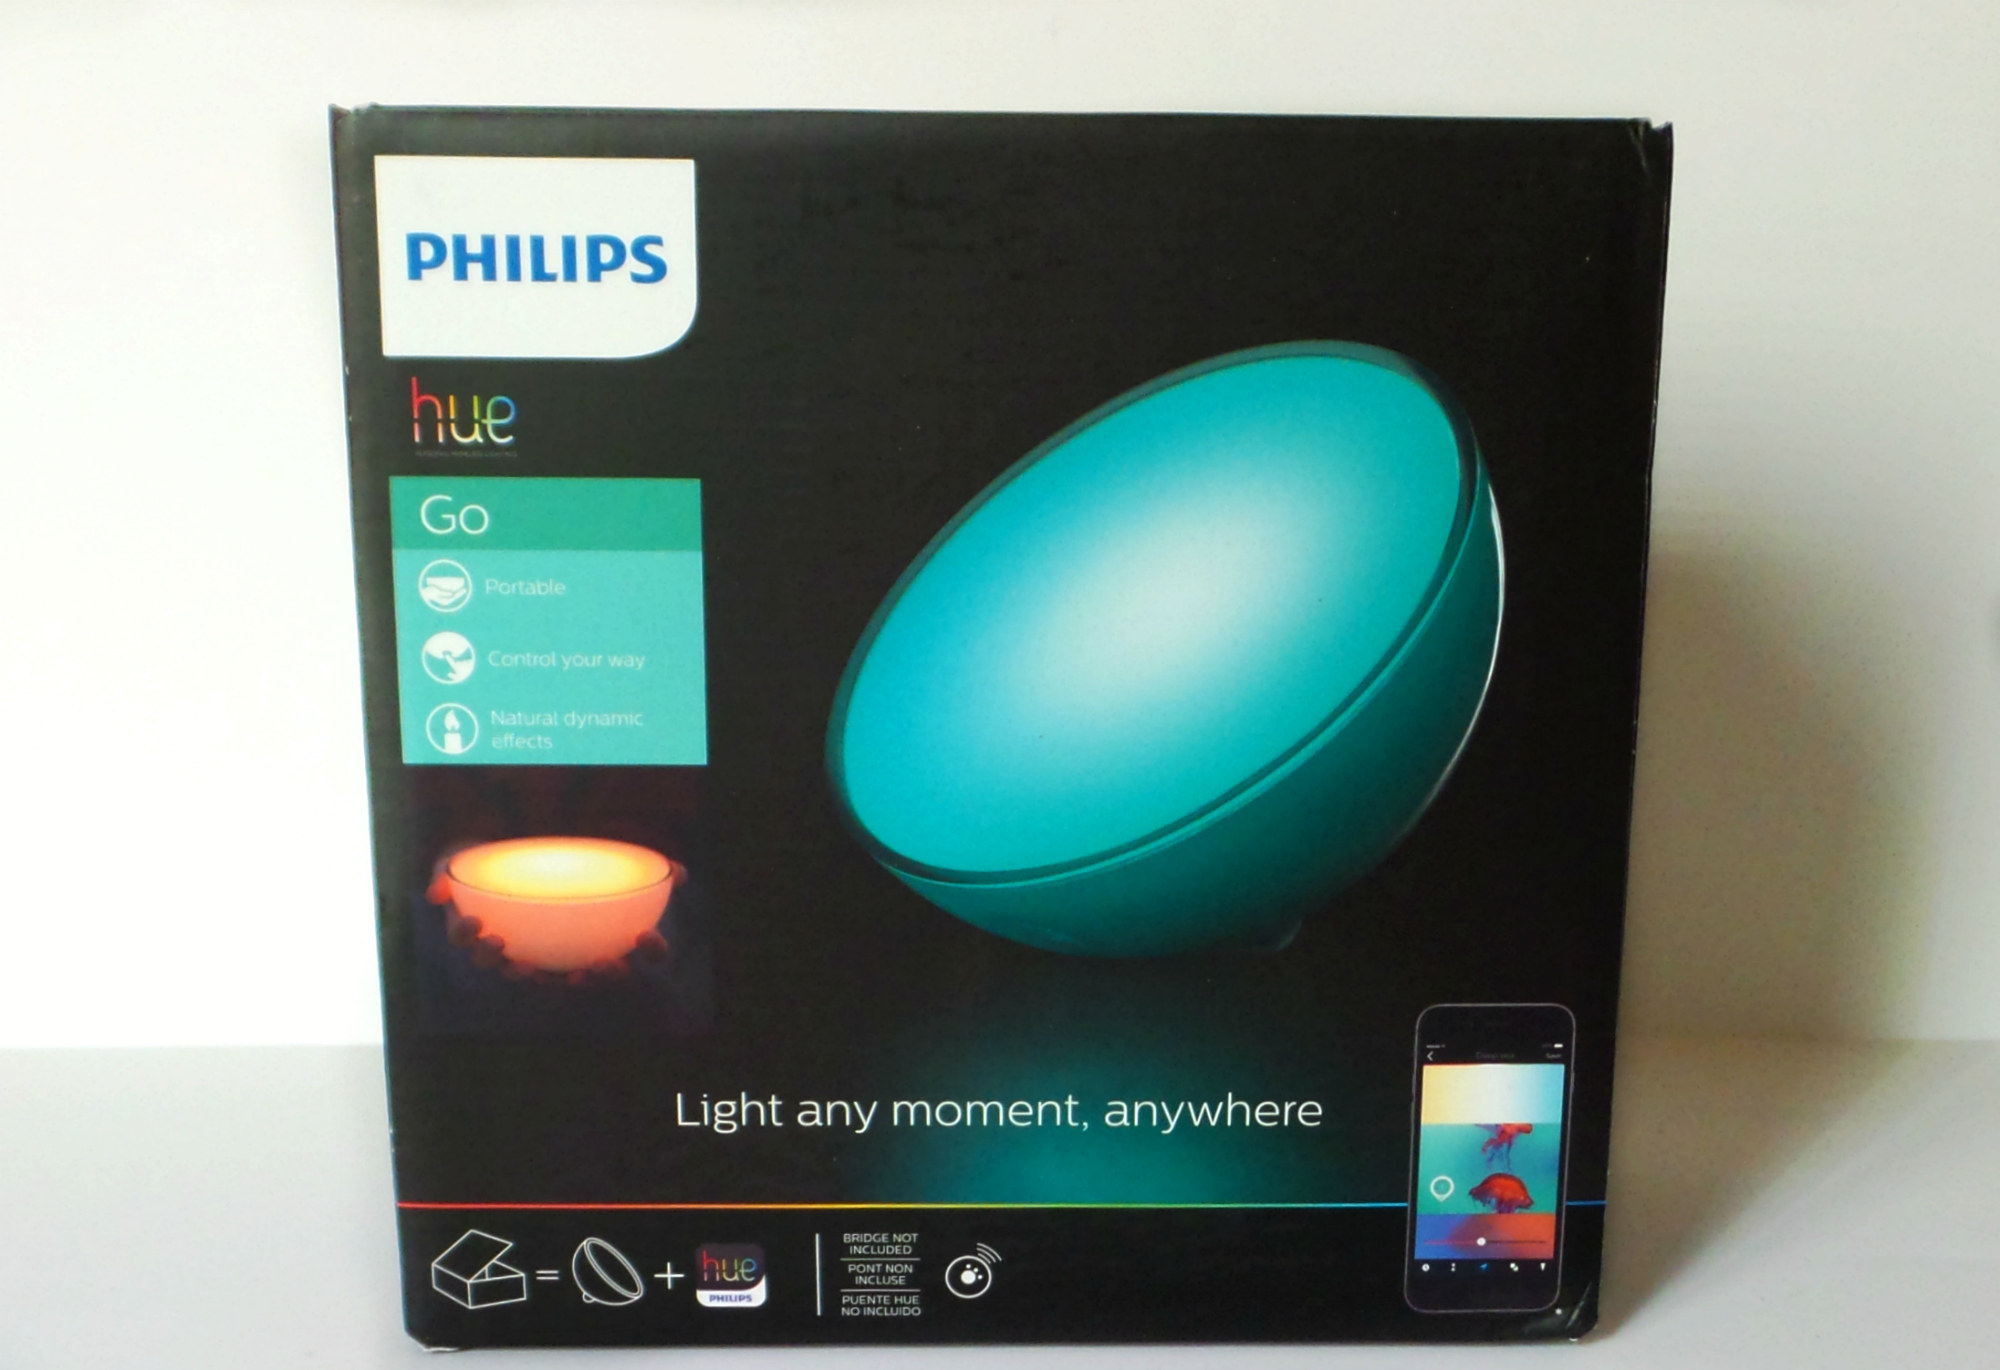 Where To Buy Philips Hue Bridge Light Up Your Life With Philips Hue From Best Buy - Family